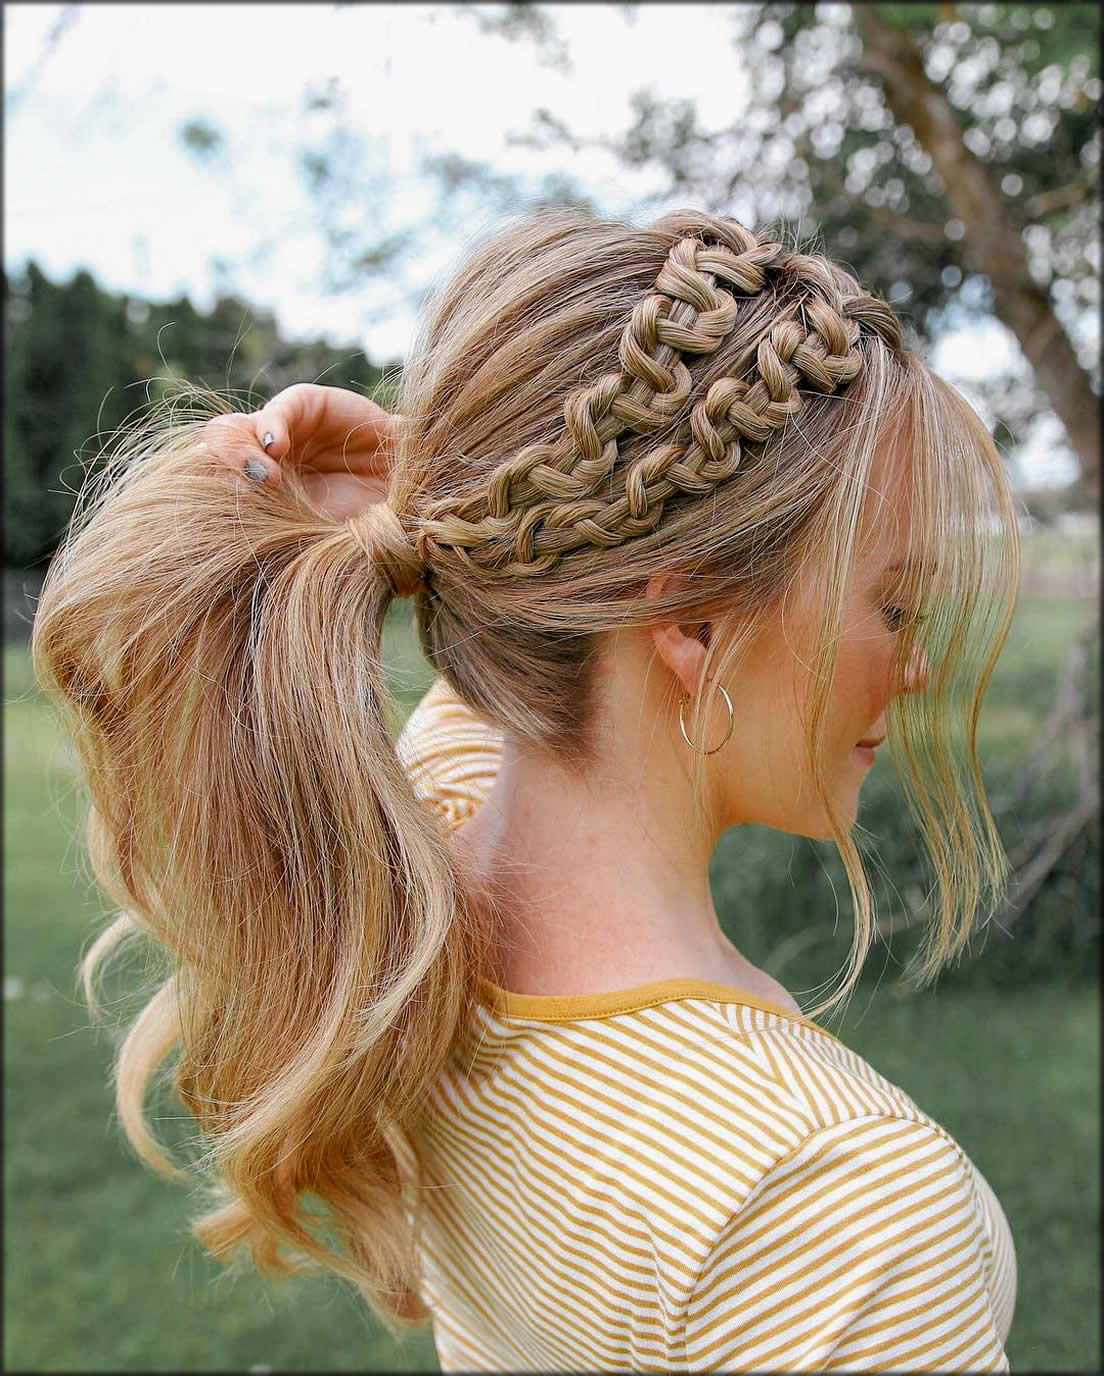 Stylish Ponytail Women Hairstyles For Long Hairs